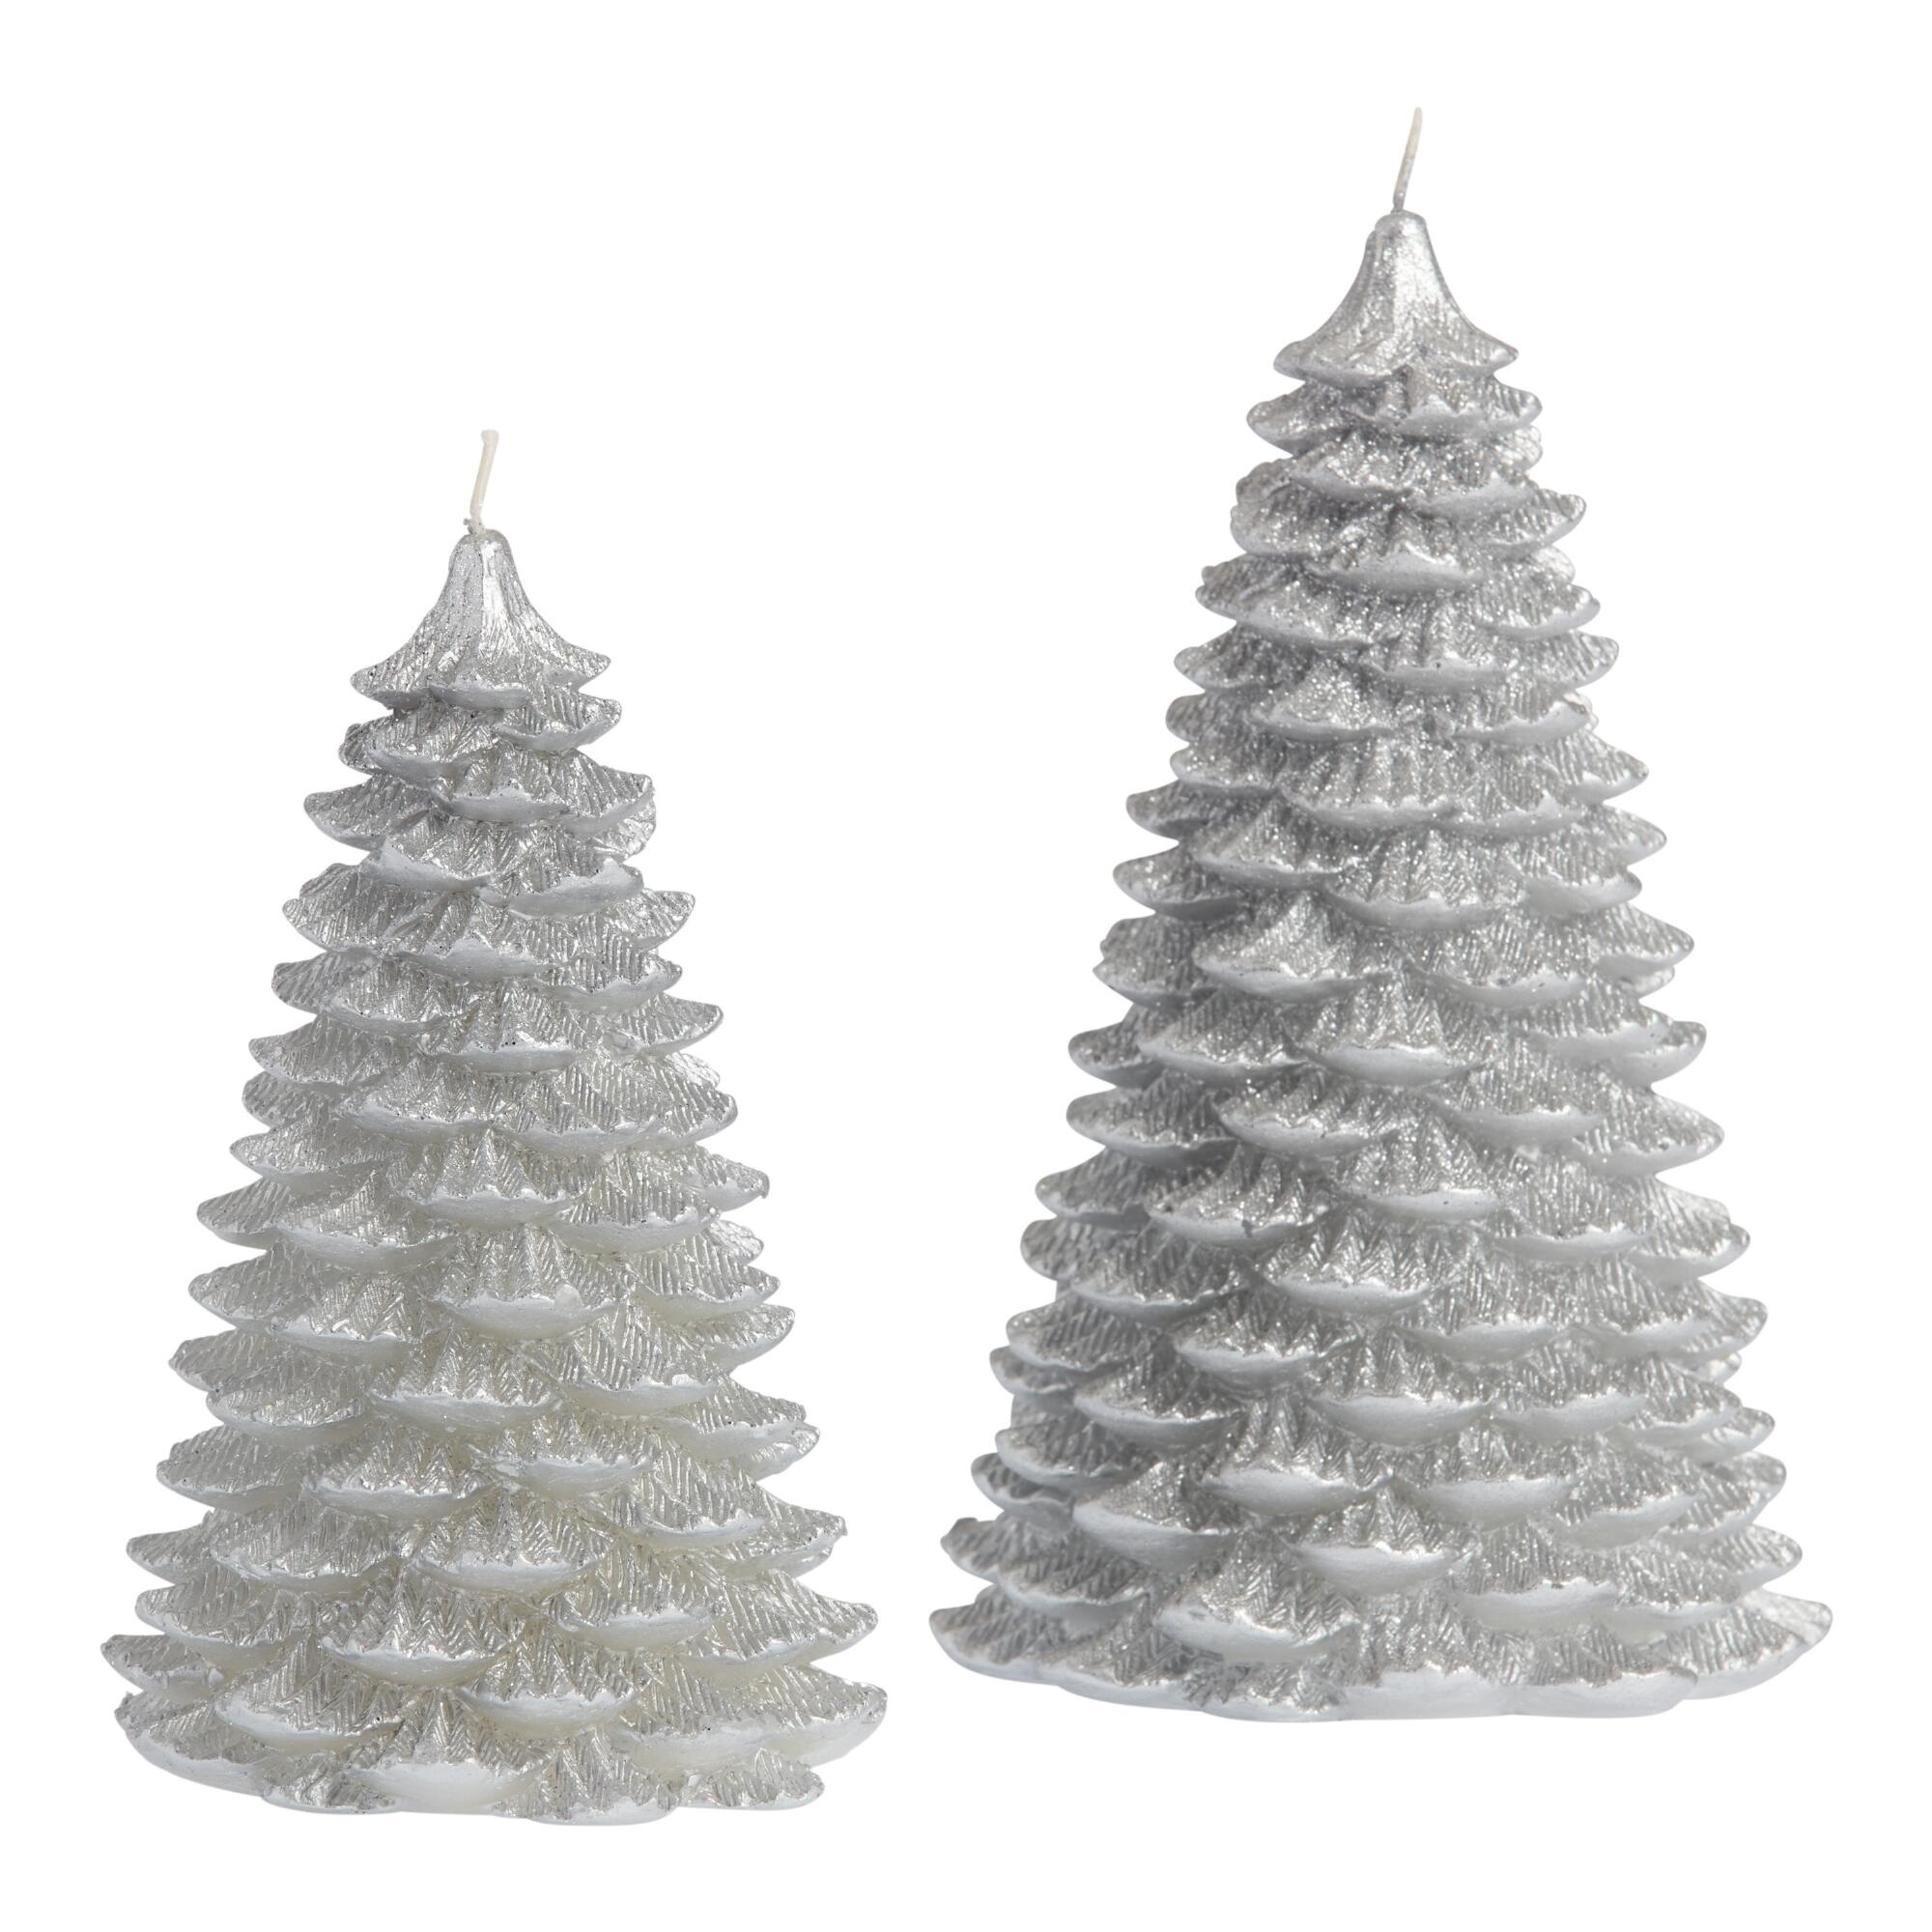 Silver Glittered Christmas Tree Candle $6.99-$9.99